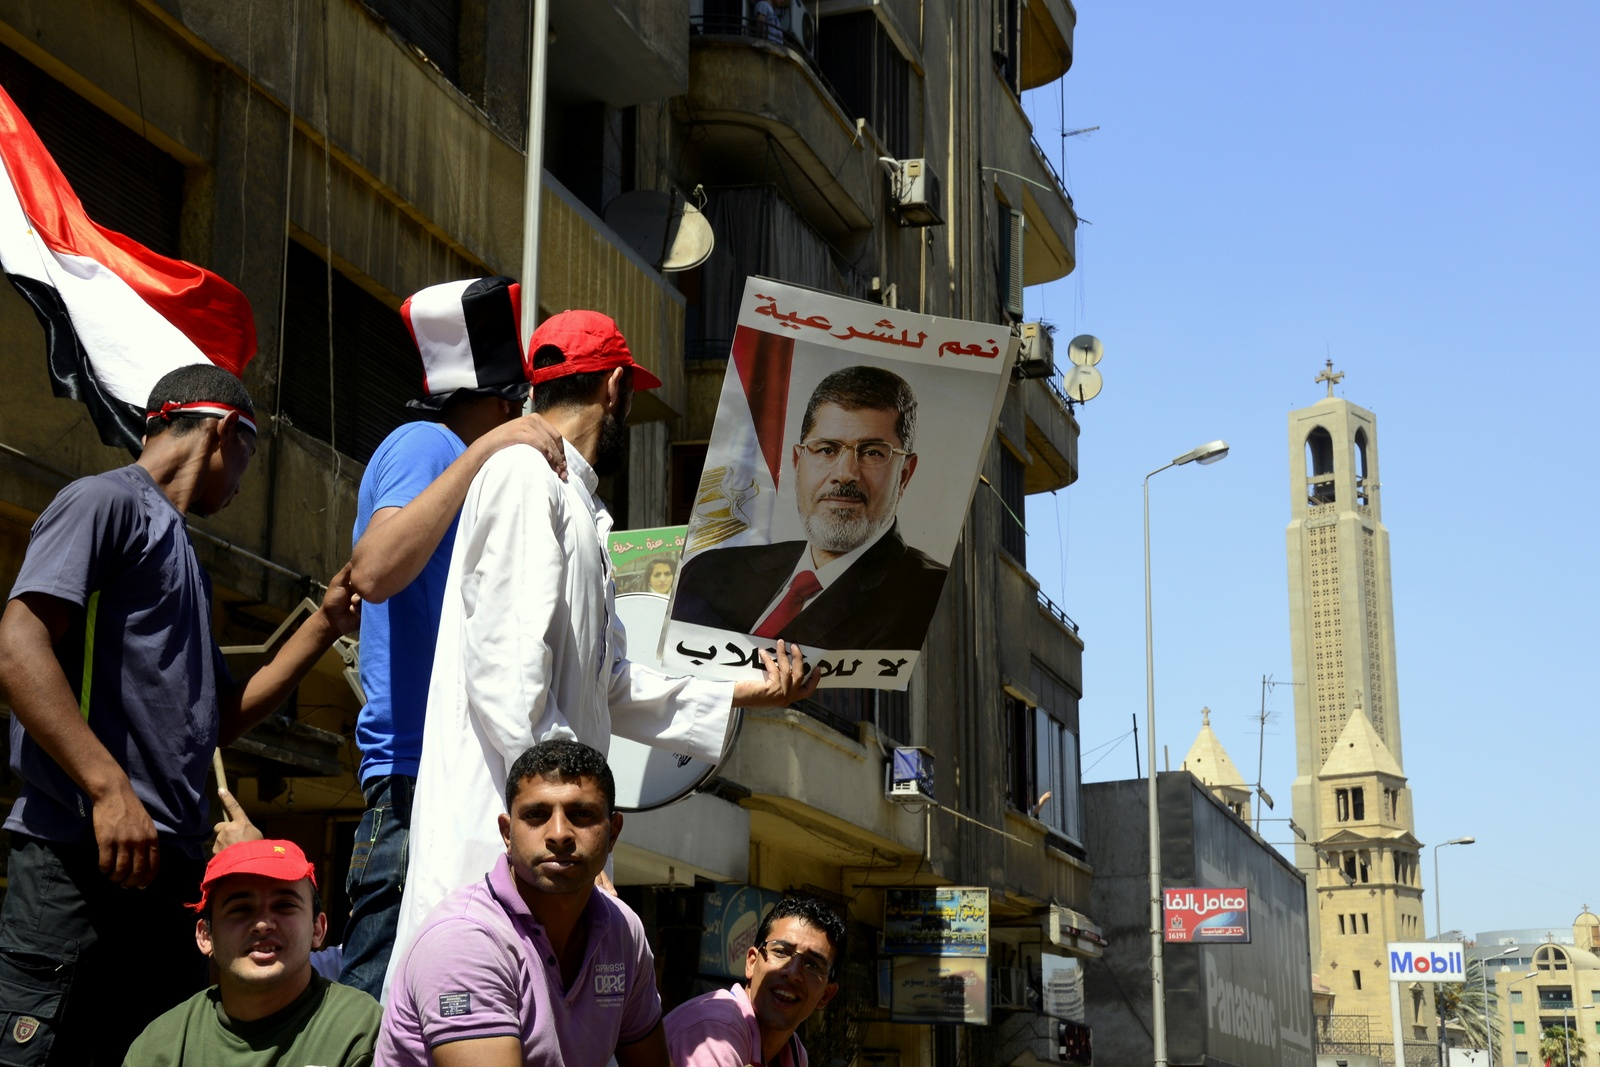 Morsi supporters march from Ramses Square to Rabaa sit in (Photo by Aaron T Rose/DNE)